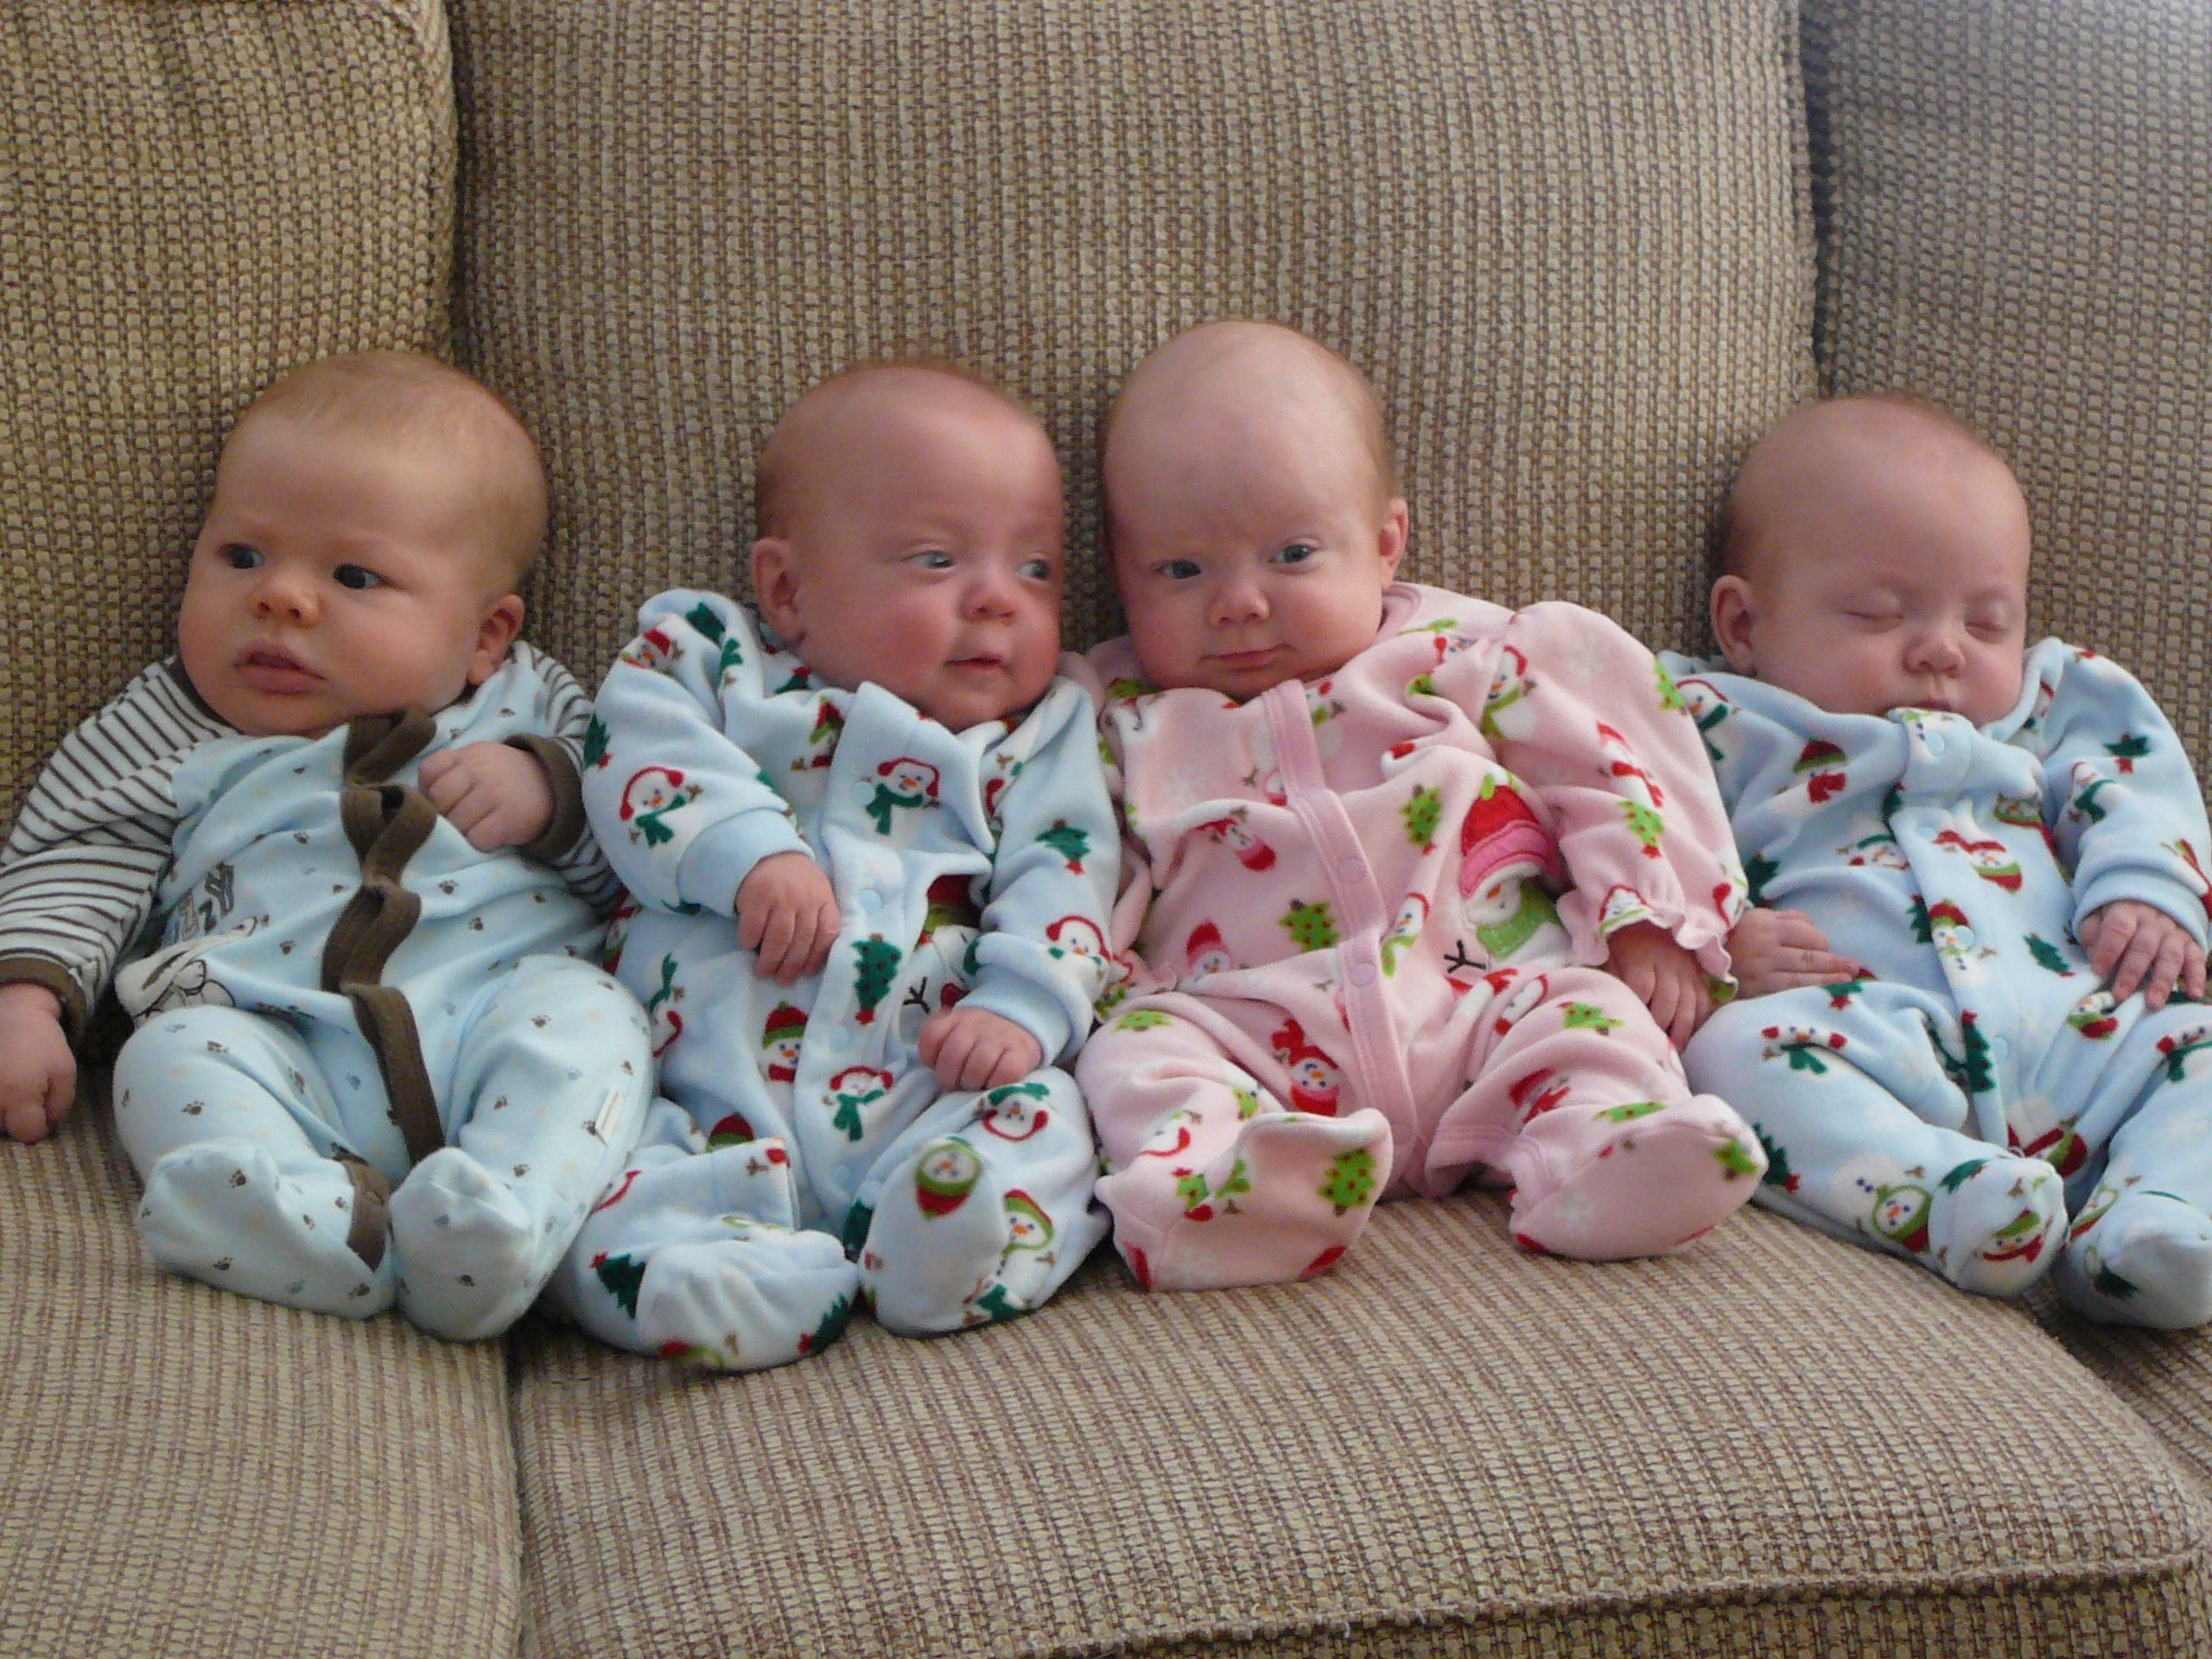 identical triplet babies - photo #12